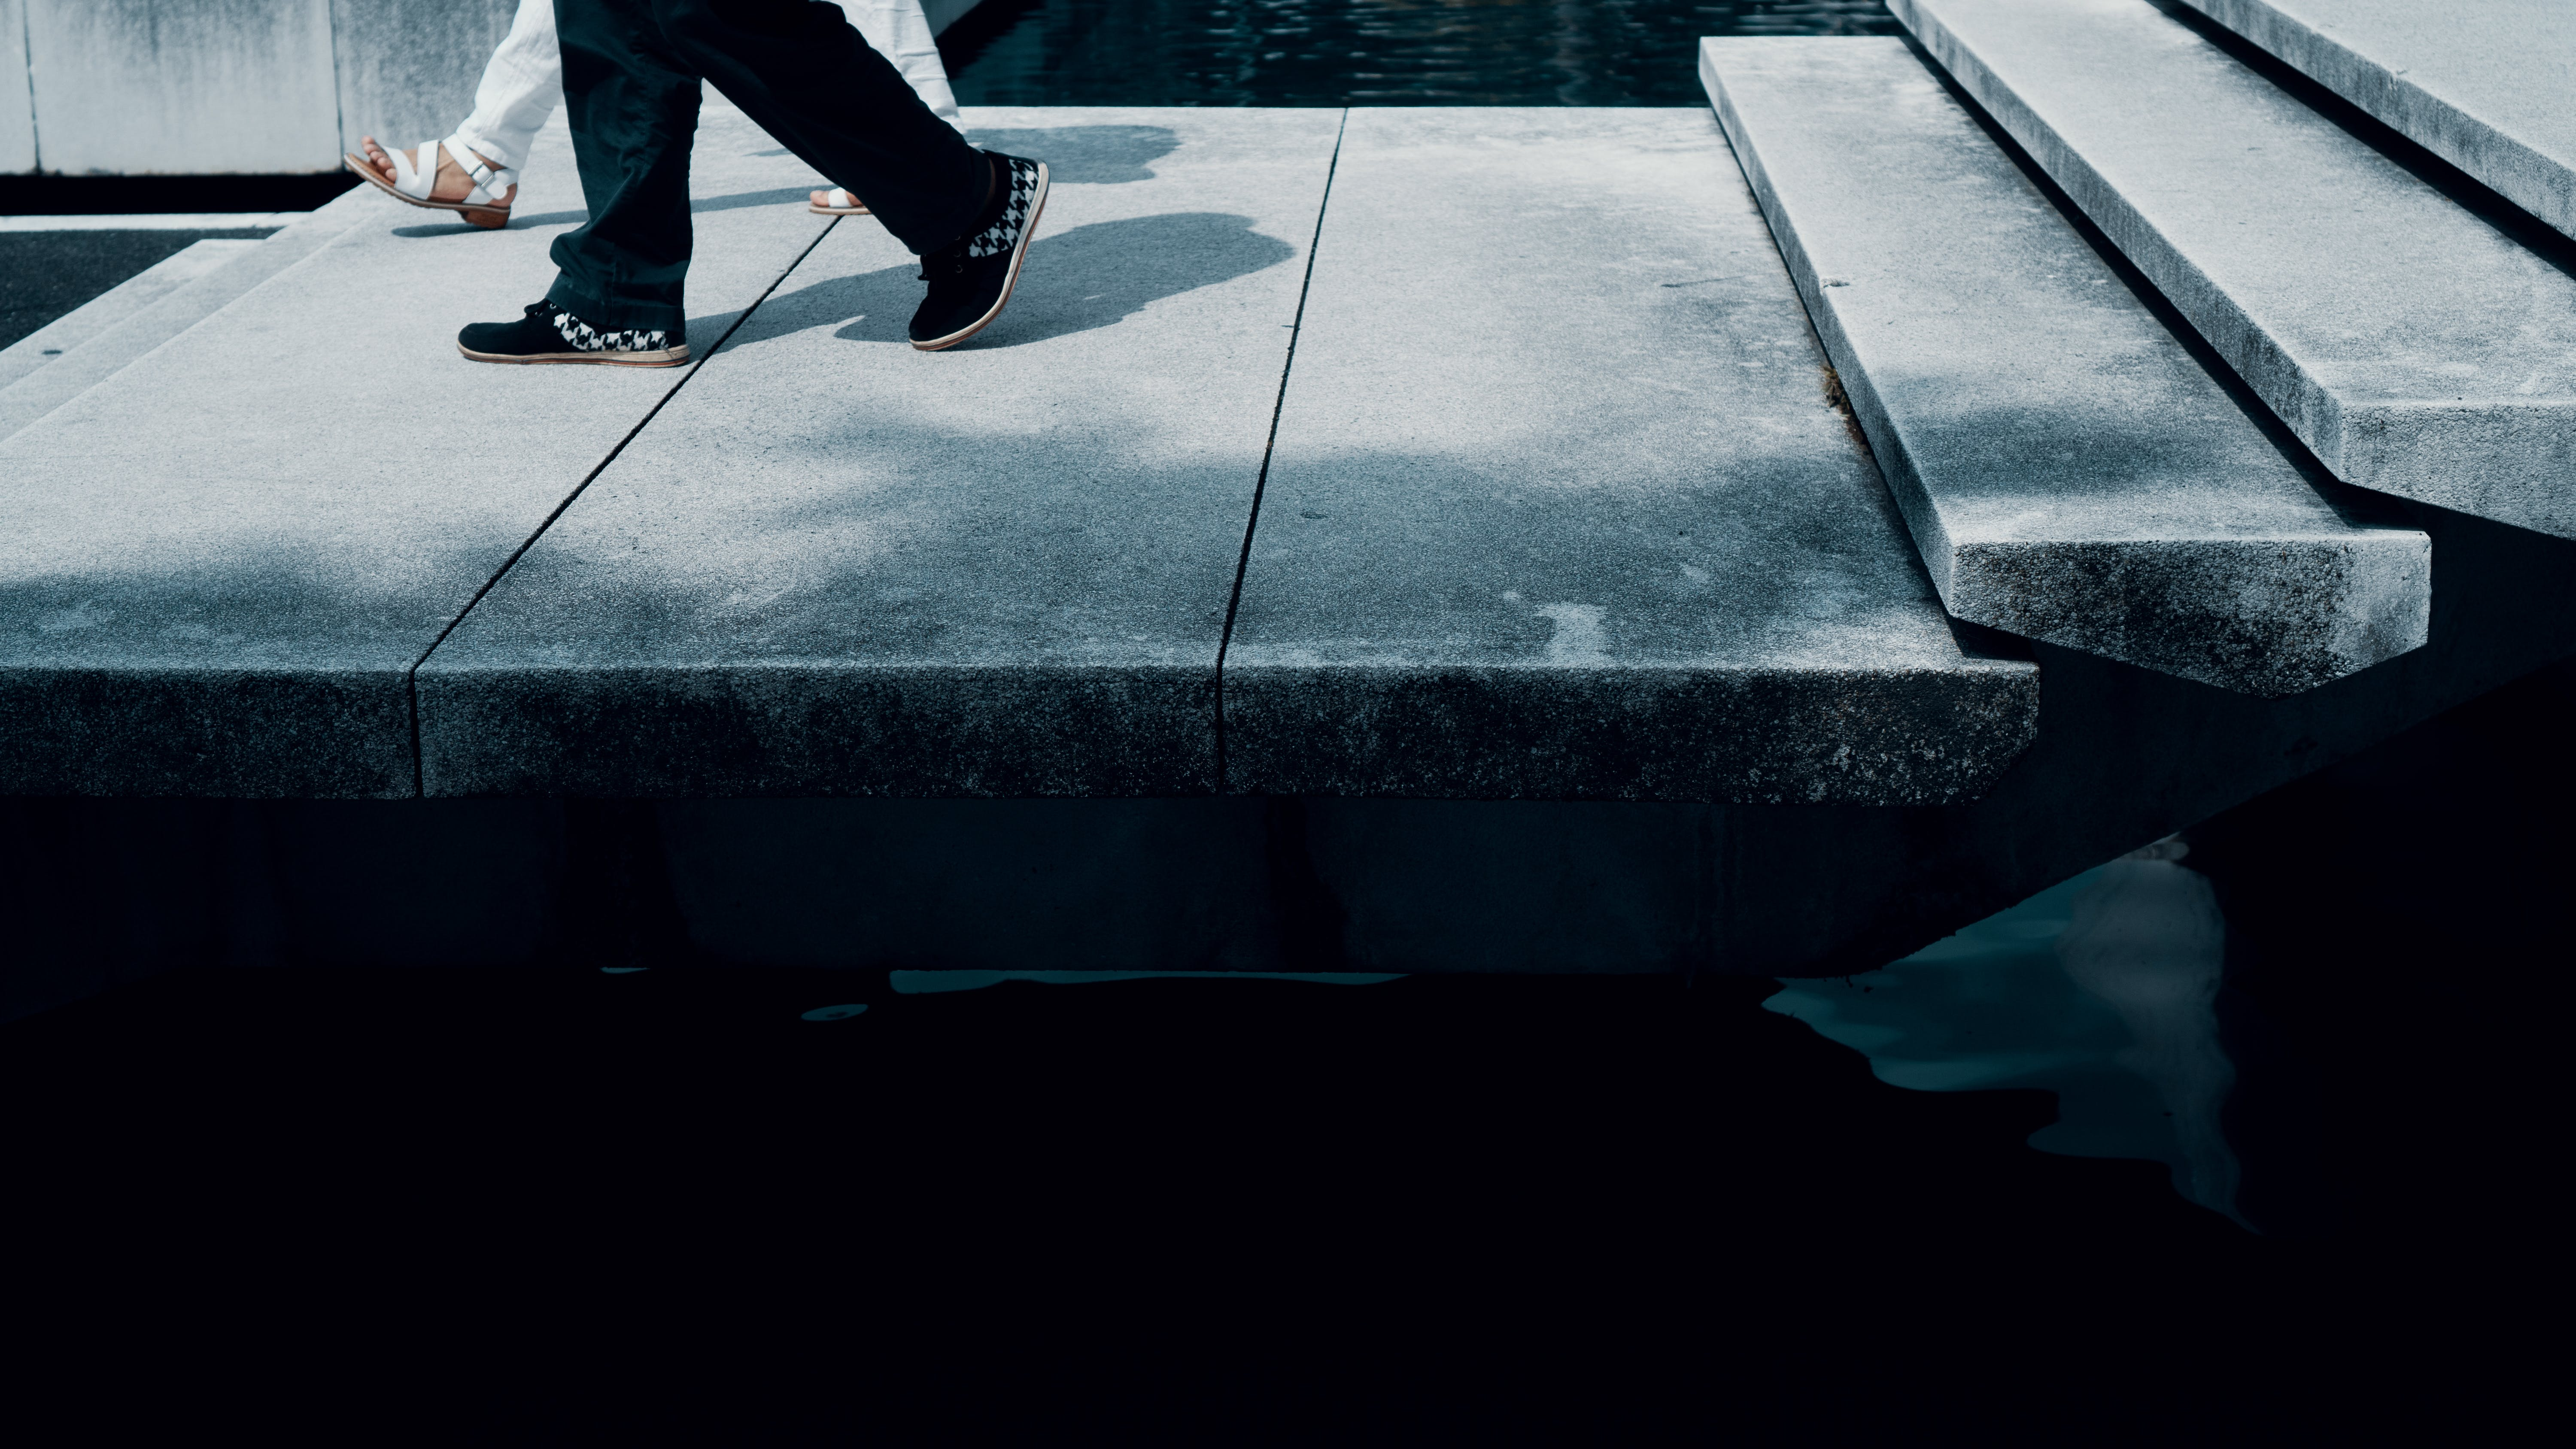 Two People Walking on Concrete Pavement